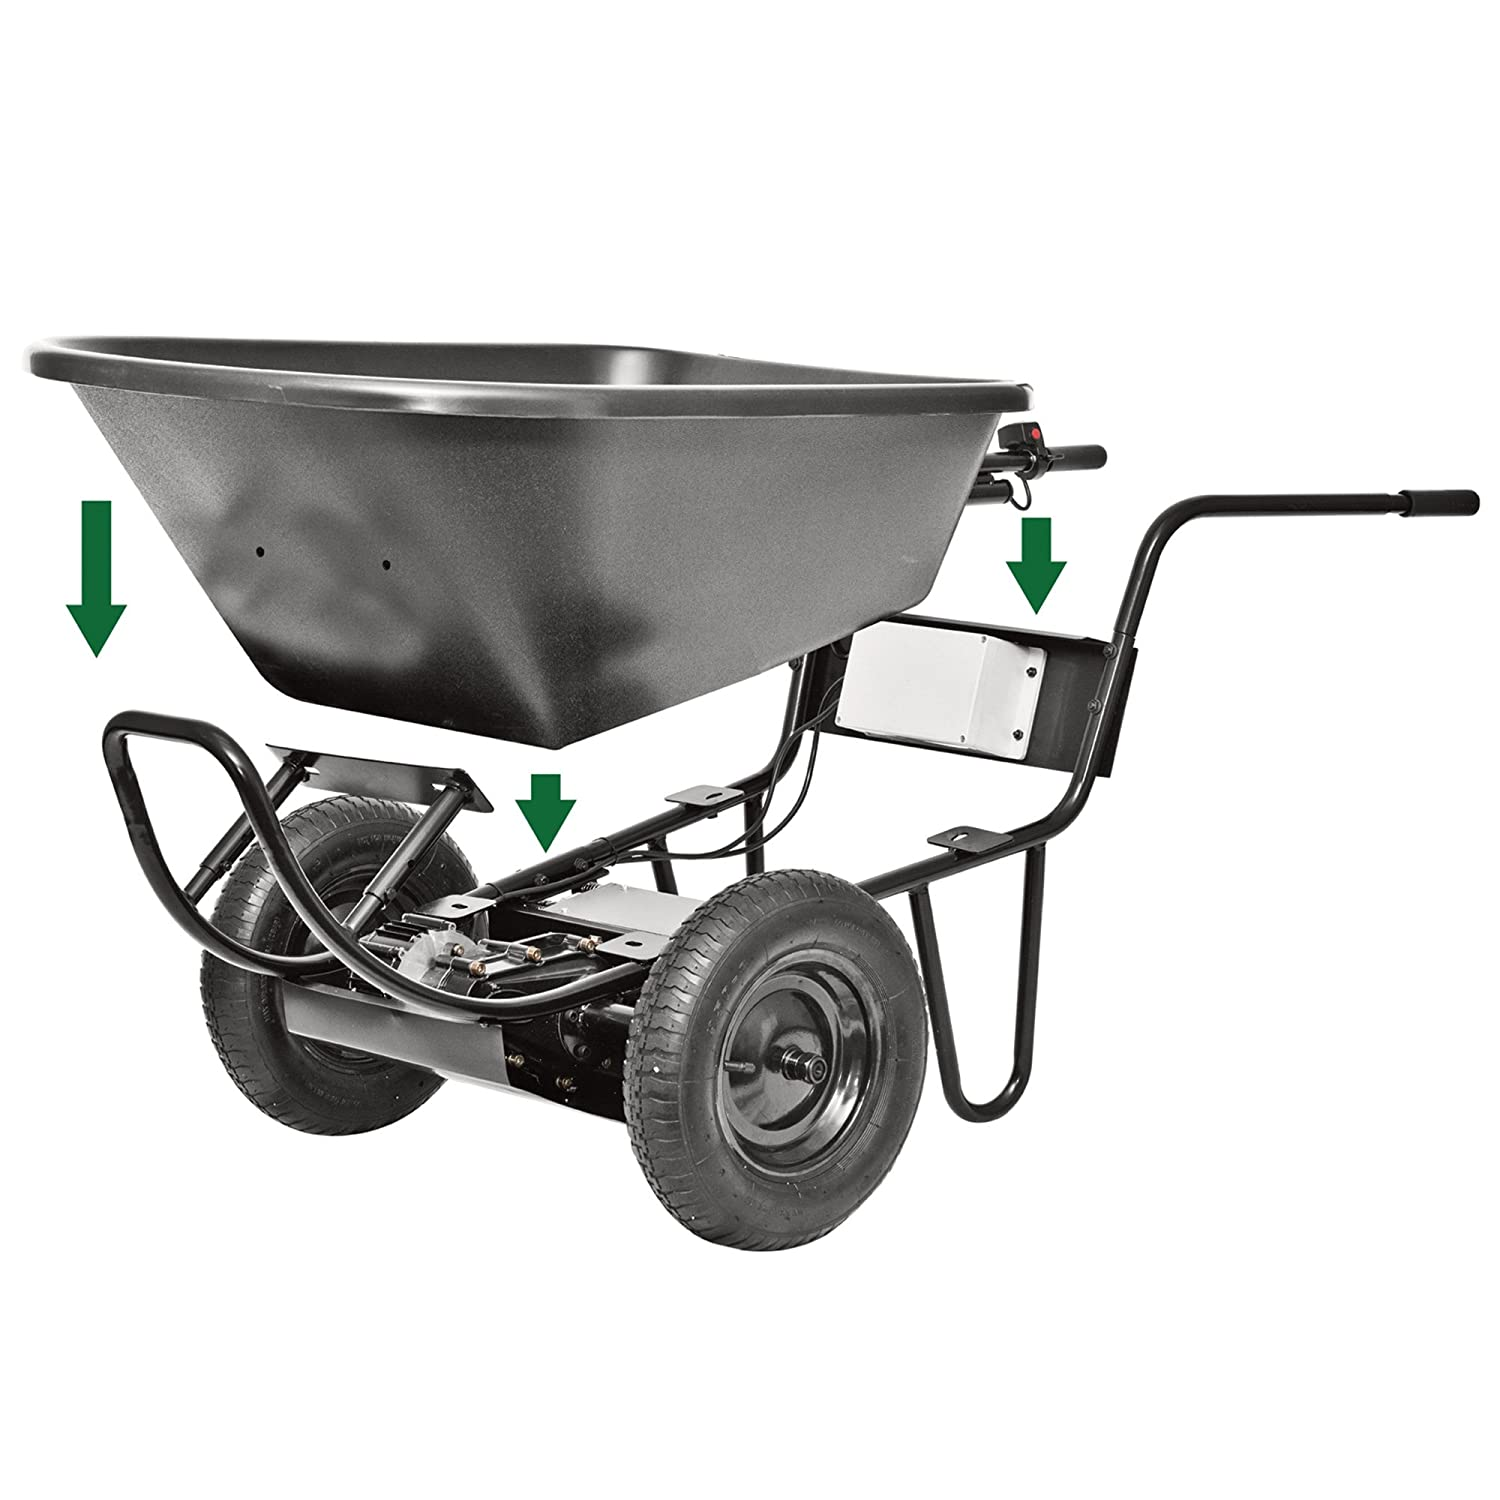 5 Best Wheelbarrow 2018 Review How To Buy The Best One